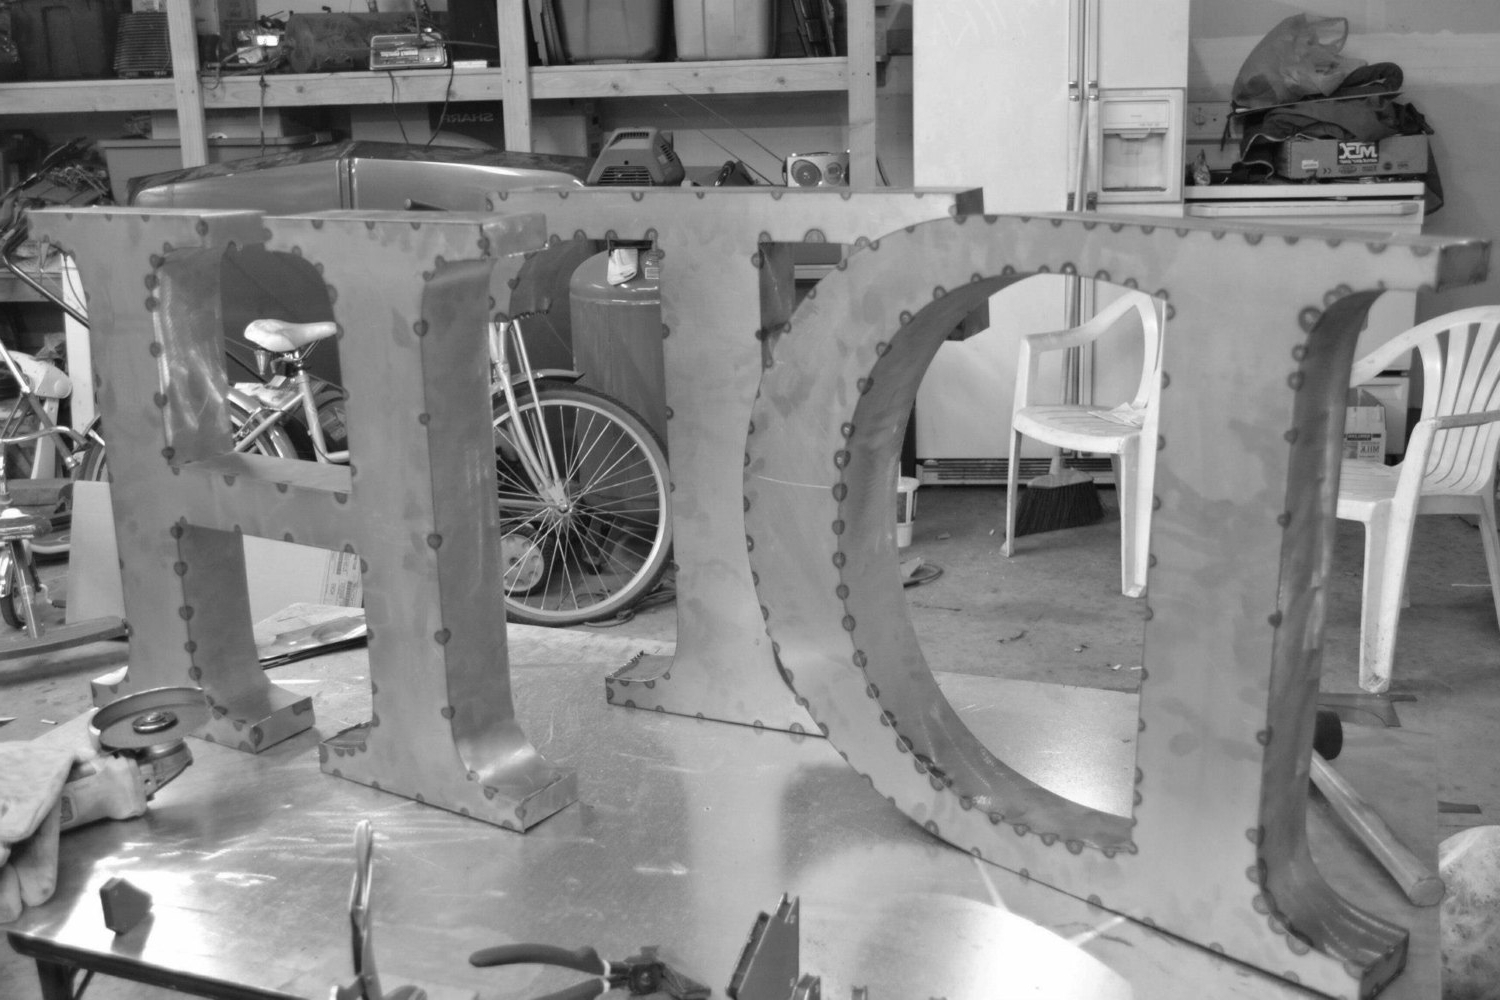 Well Known Large Letter Large Letters For Wall Decor With Diy Wall Decor Within Metal Letter Wall Art (View 13 of 15)